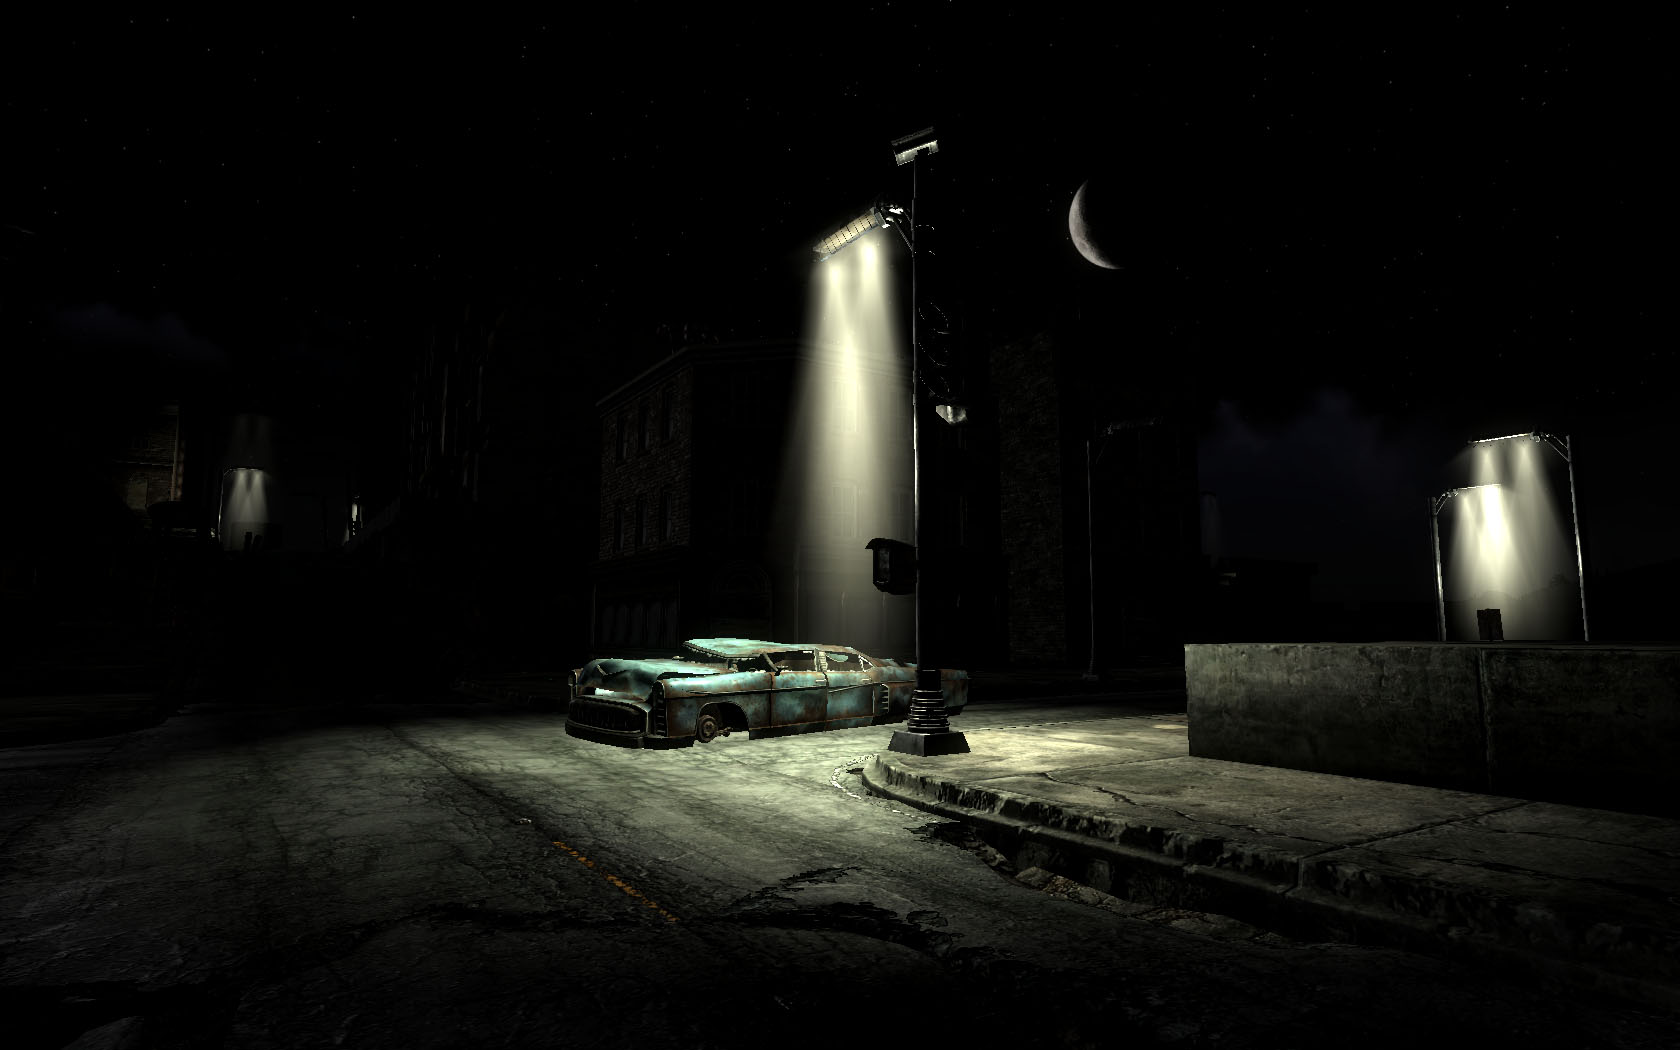 How To Use Wall Lights Fallout 4 : Fallout Street Lights at Fallout3 Nexus - mods and community